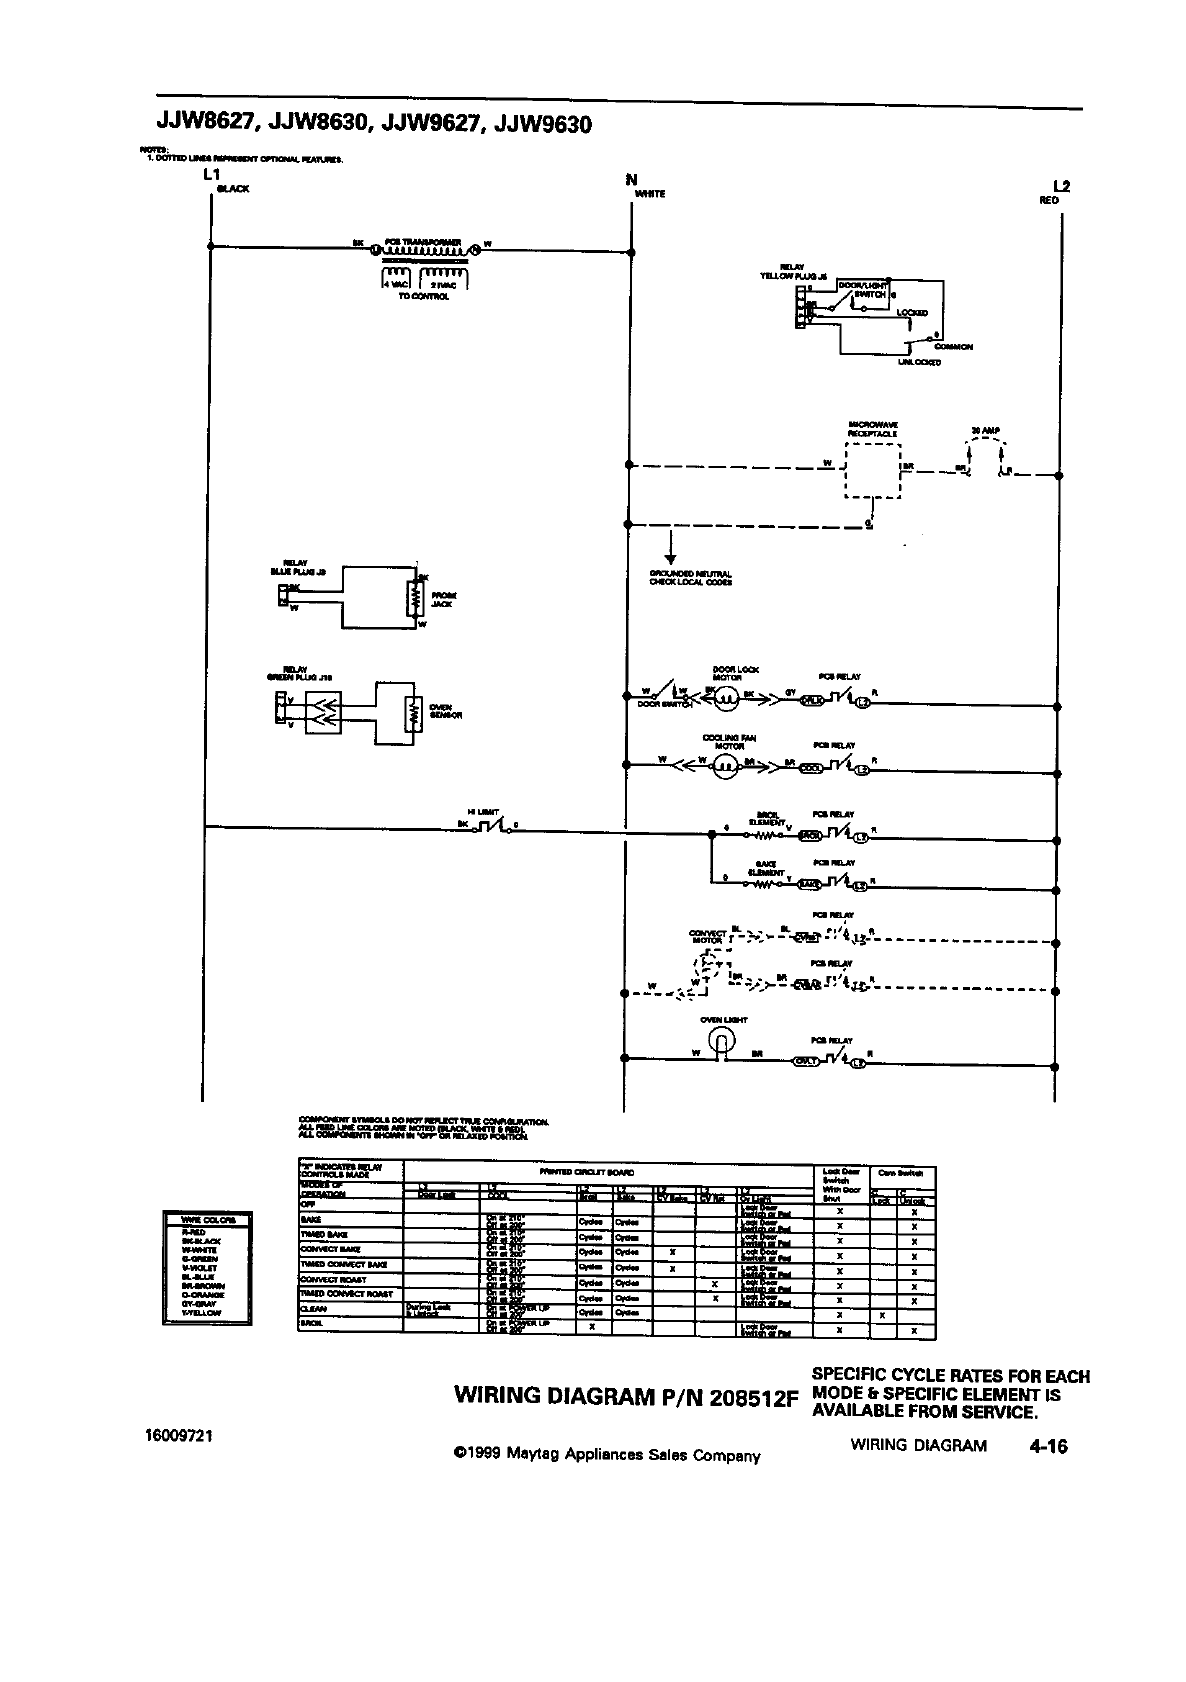 52b2f415 78fa 4259 88c0 be210120d02a bg30 page 48 of jenn air oven w30100 user guide manualsonline com Basic Electrical Wiring Diagrams at virtualis.co